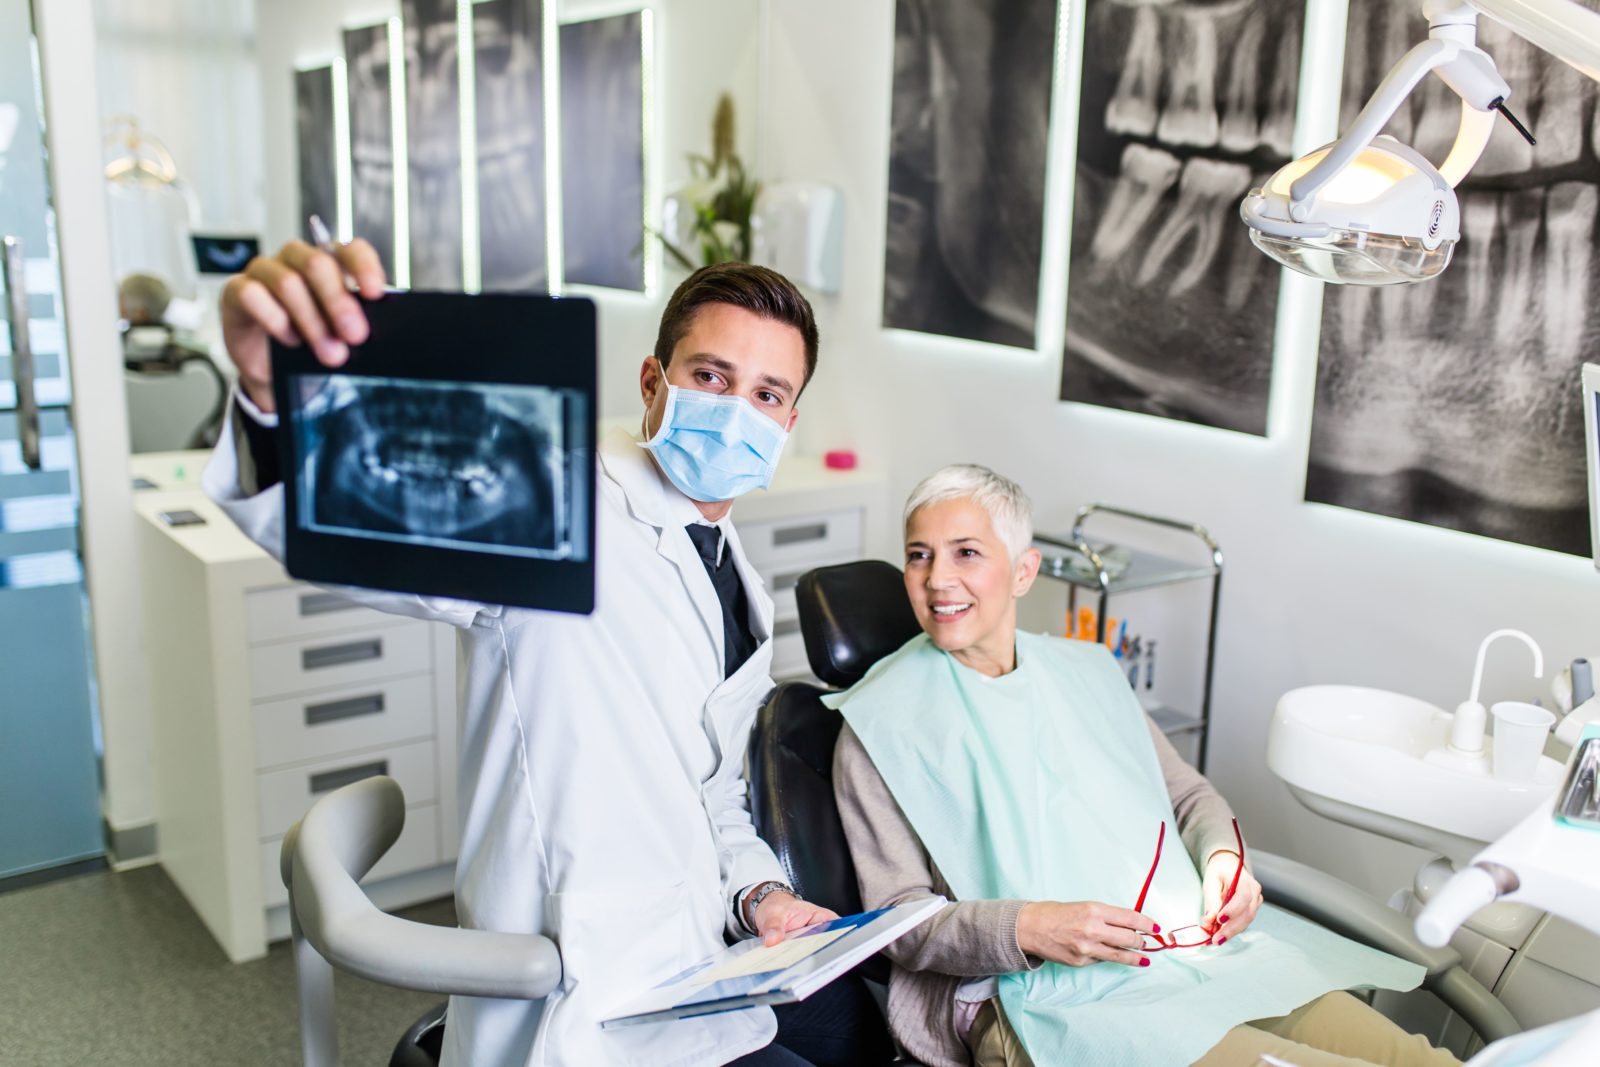 dentist review dental x-rays with patient